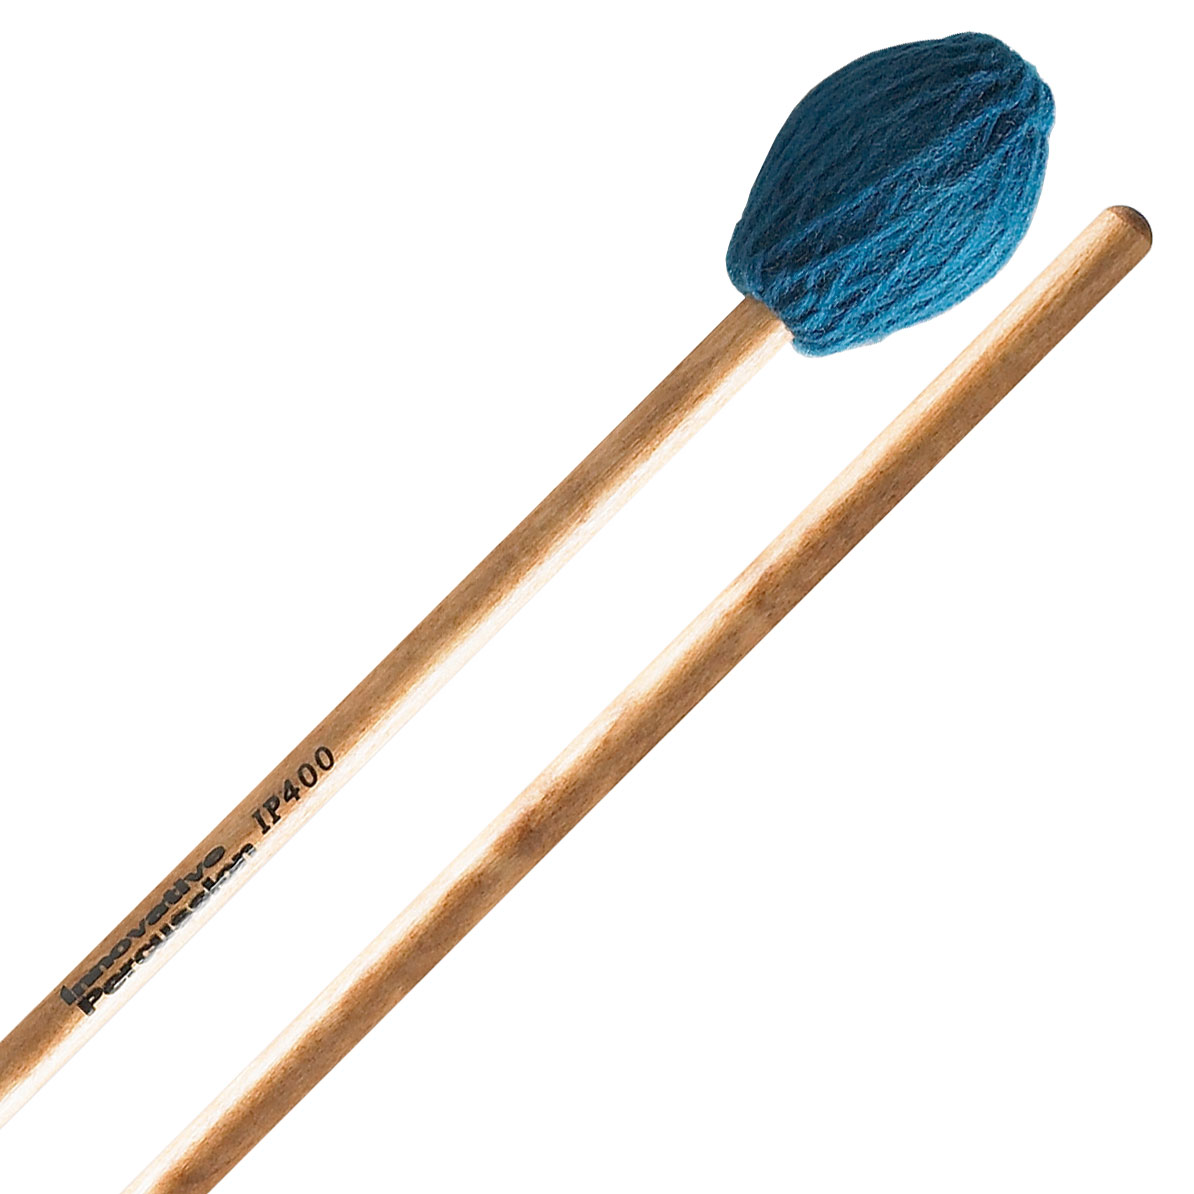 Innovative Percussion IP400 Soloist Series Hard Marimba Mallets with Lacquered Birch Shafts